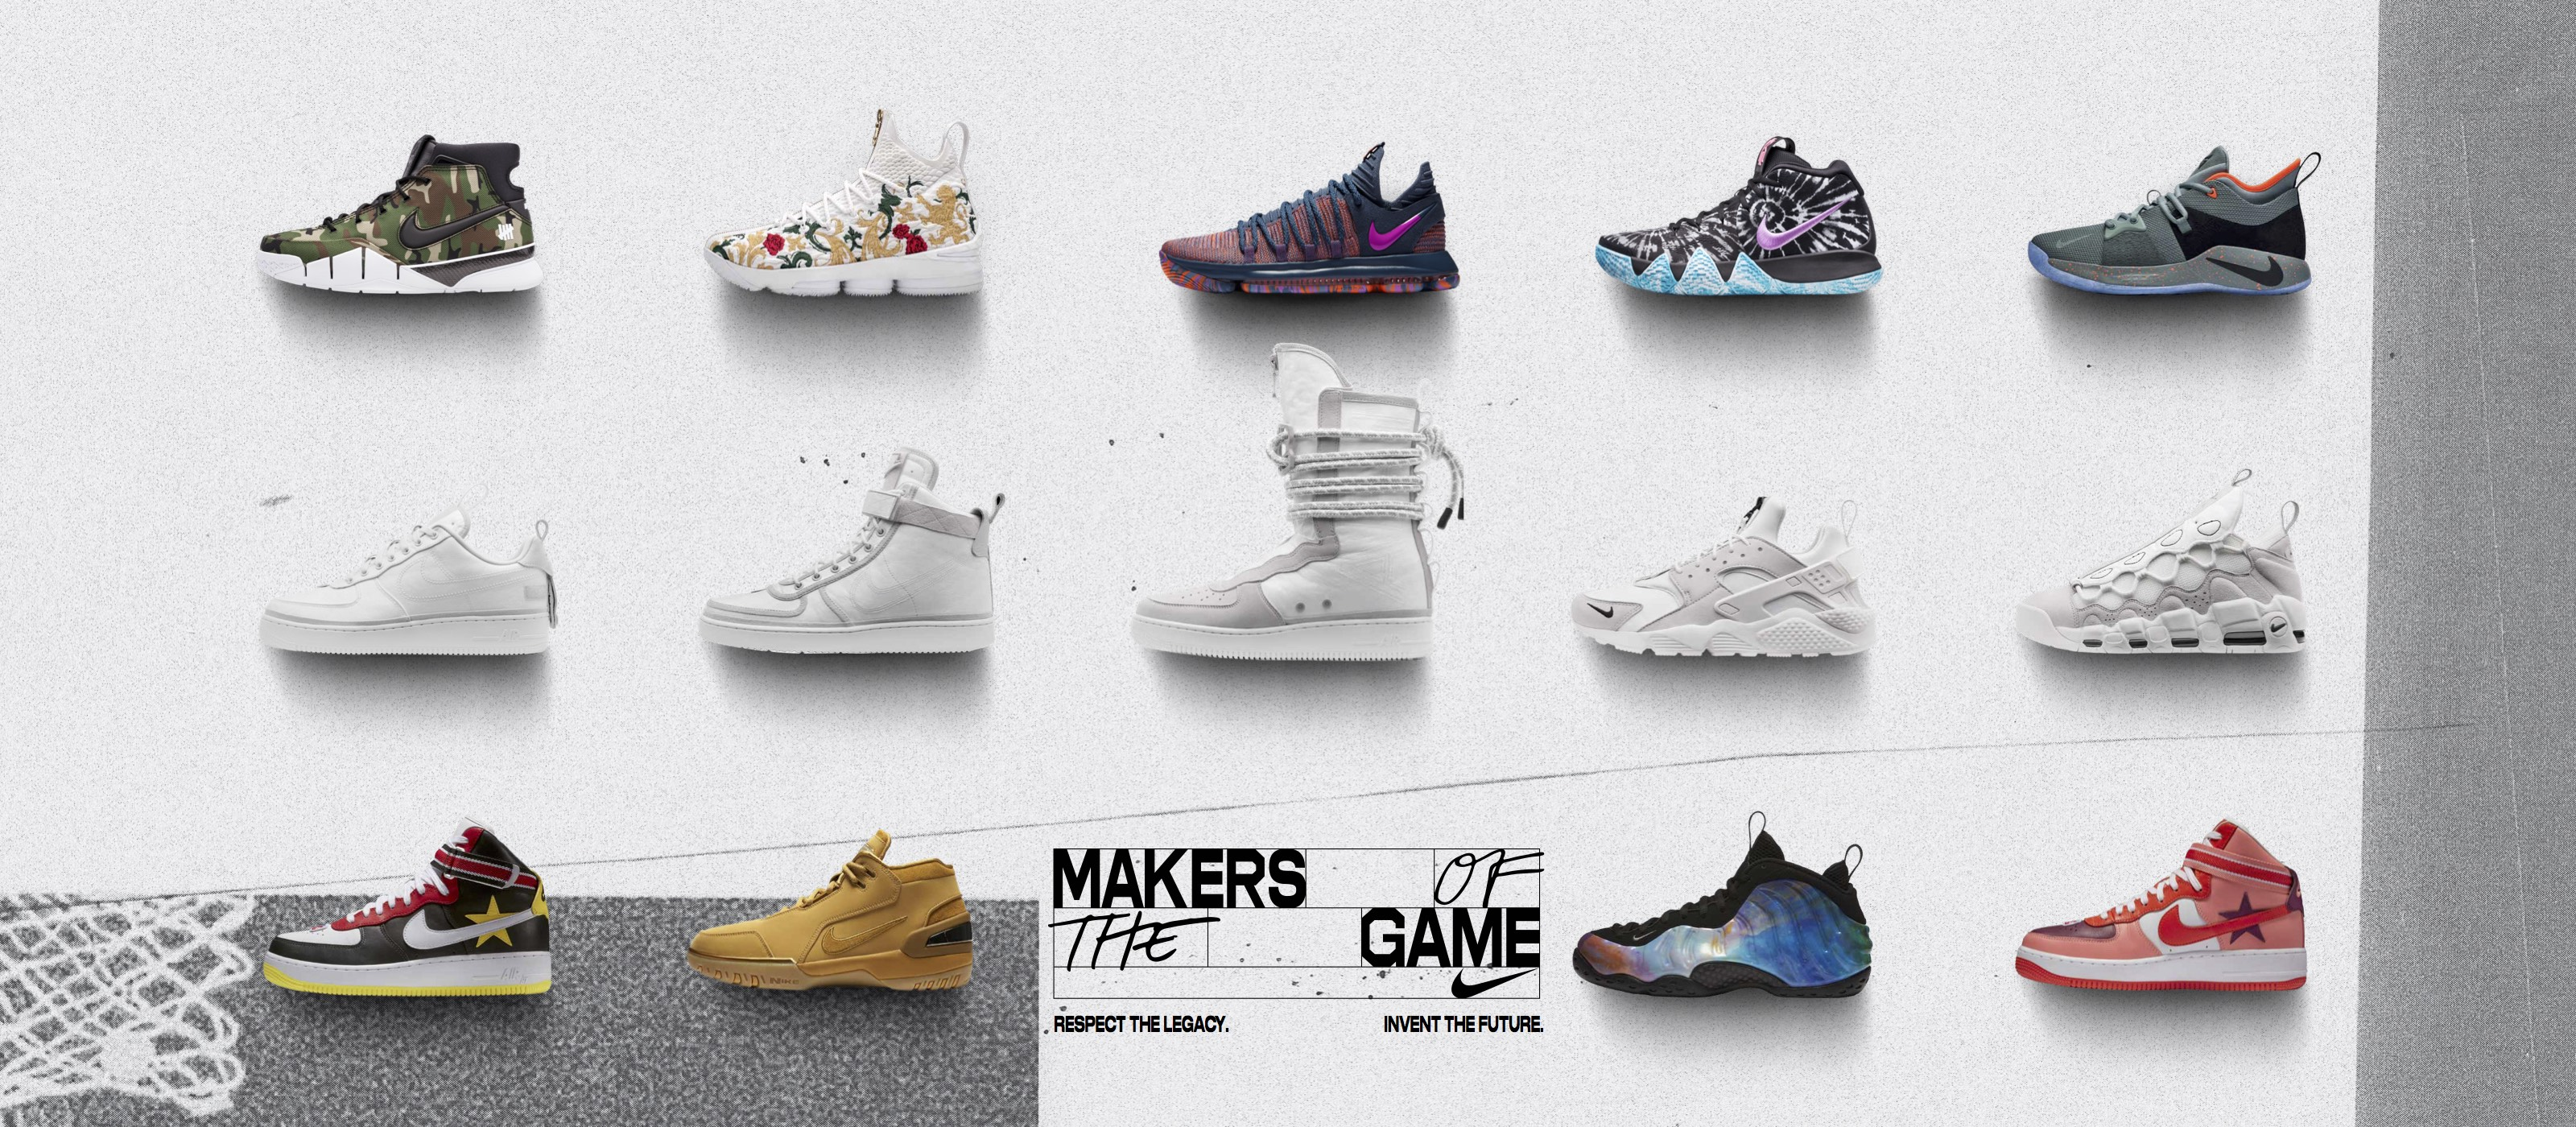 Nike_Makers_of_the_Game_original